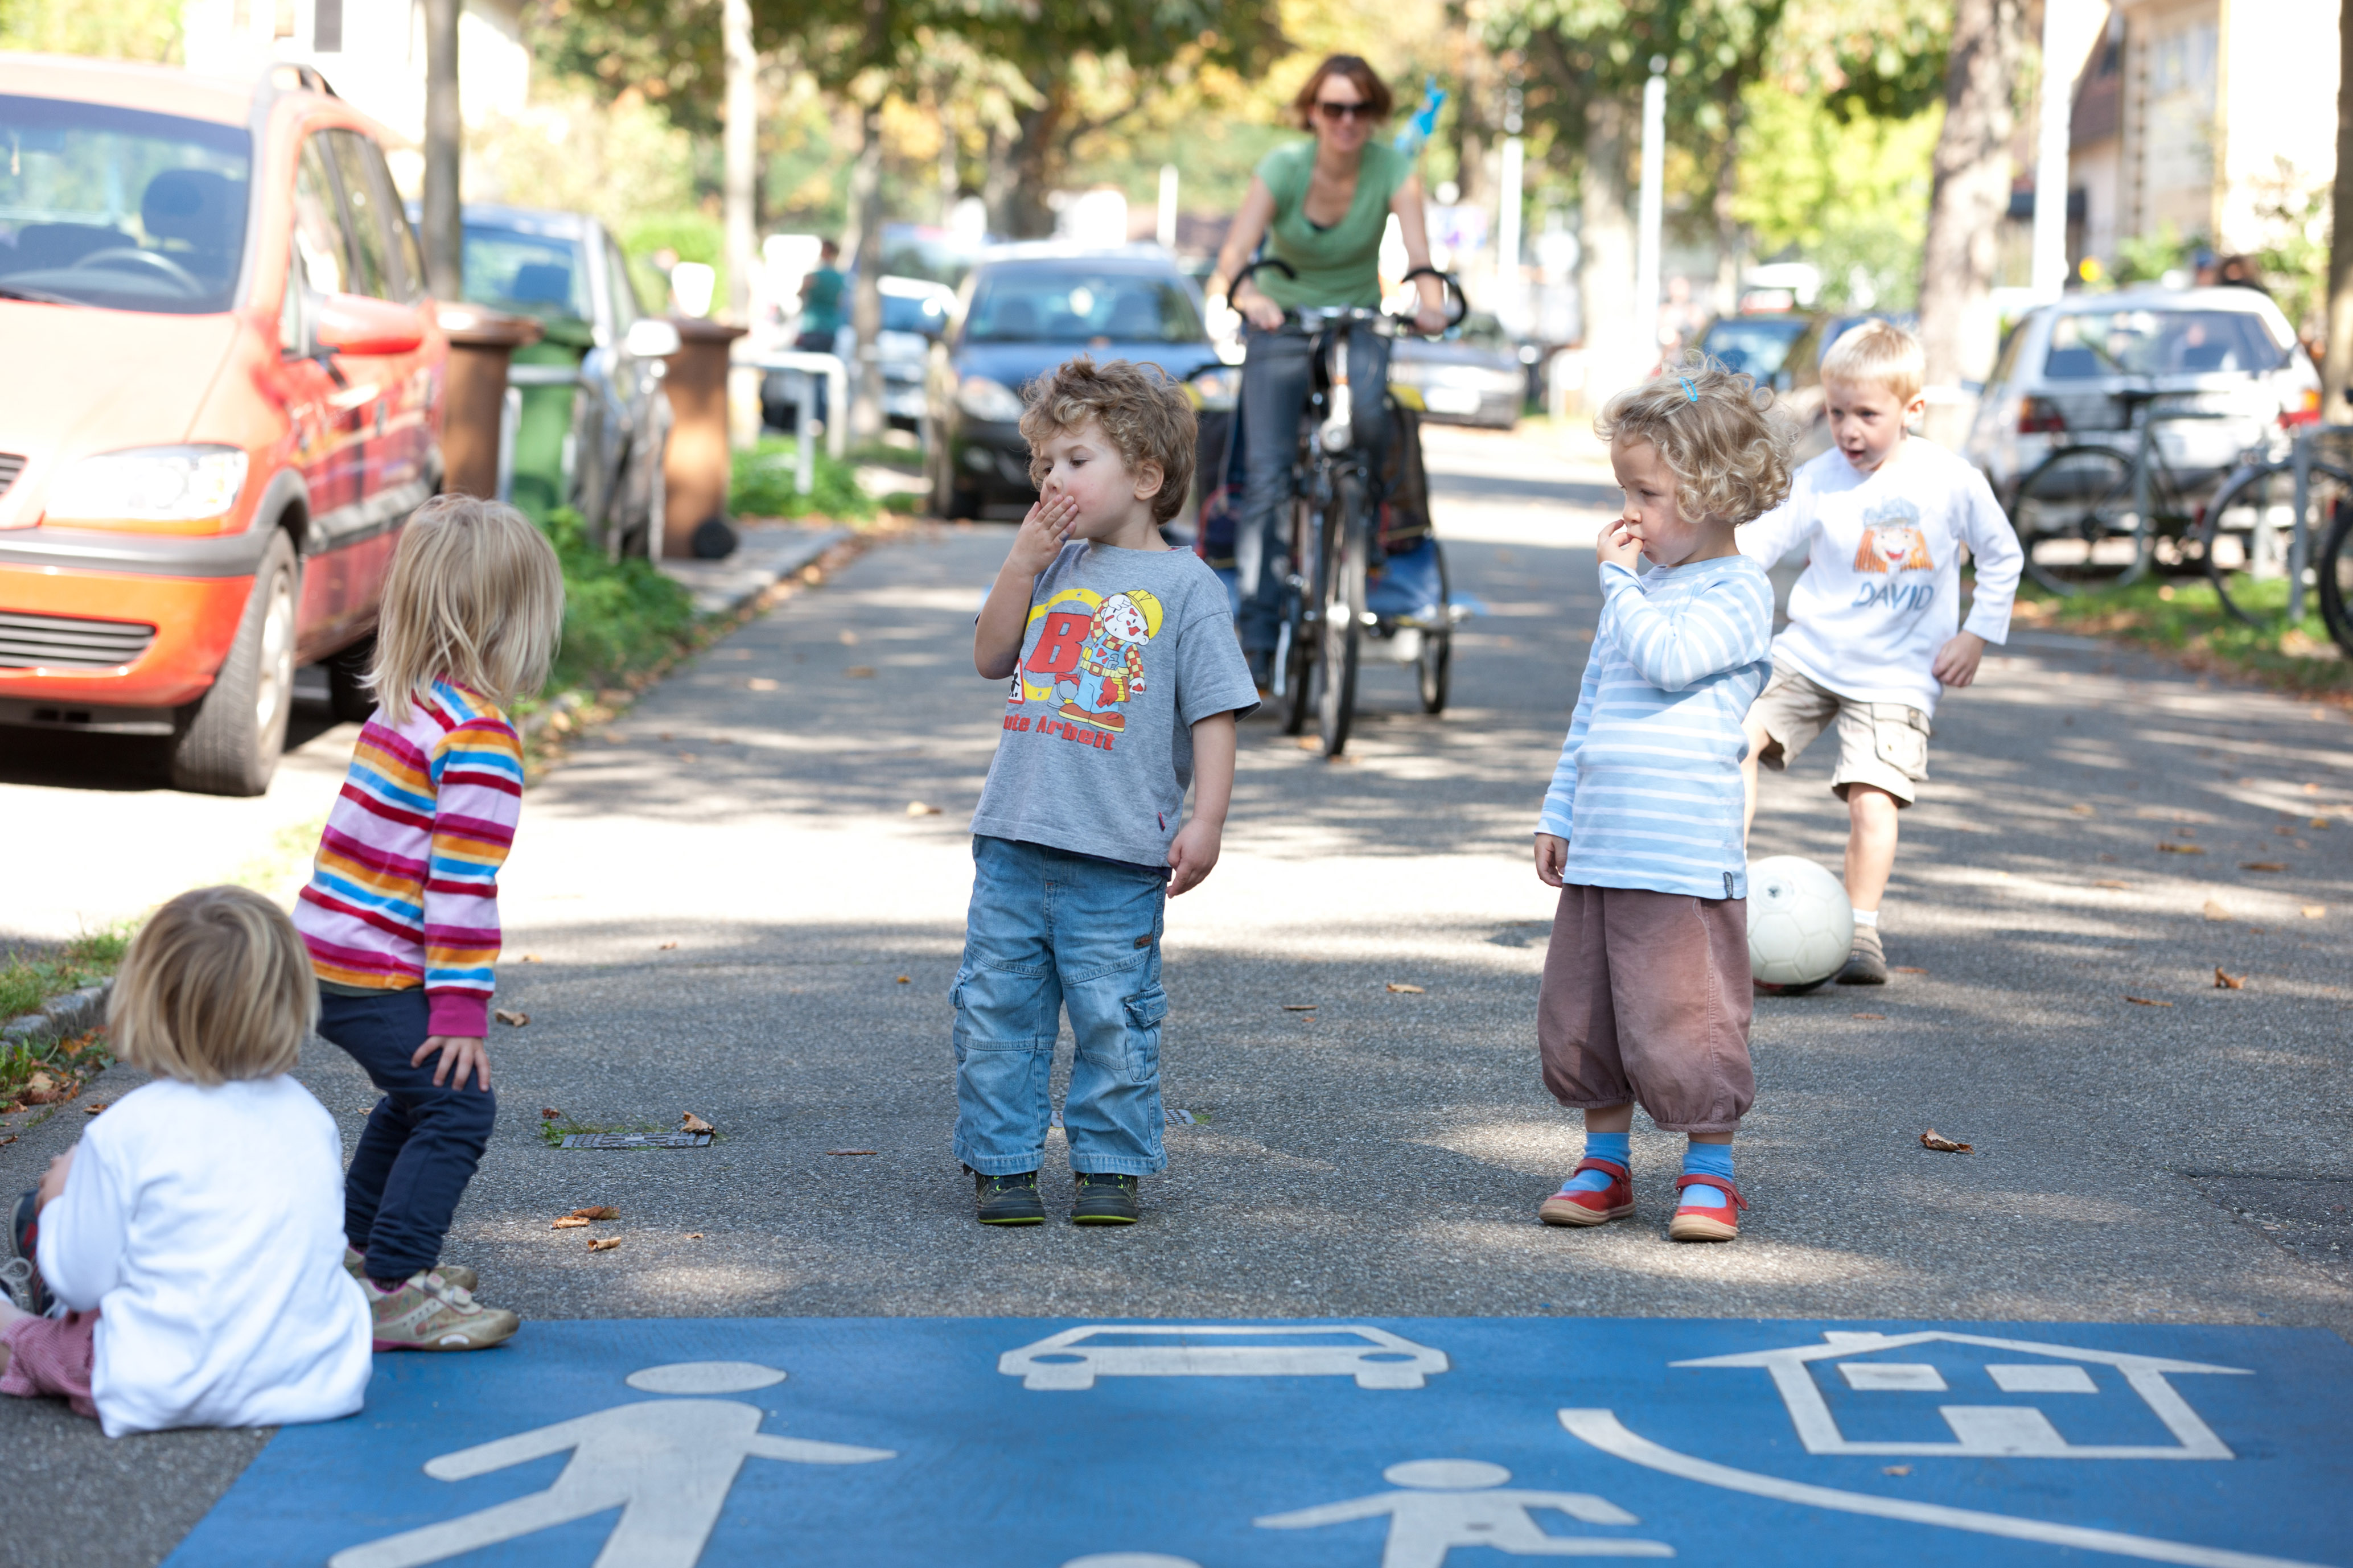 Designing Streets for Kids Guidance- 10 Actions to Improve Streets for Children | Eltis